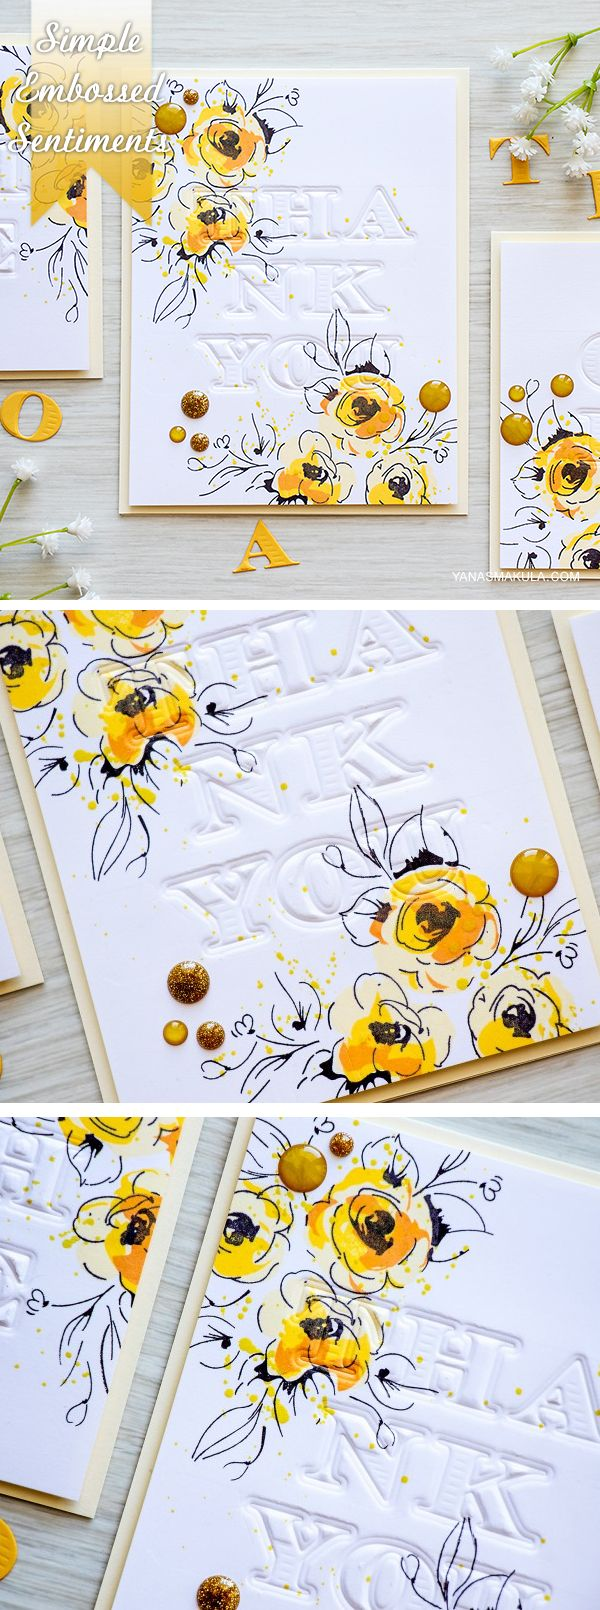 1274 best papercrafts images on pinterest invitations card create simple embossed sentiments for your cards with the help of alphabet dies video and kristyandbryce Gallery